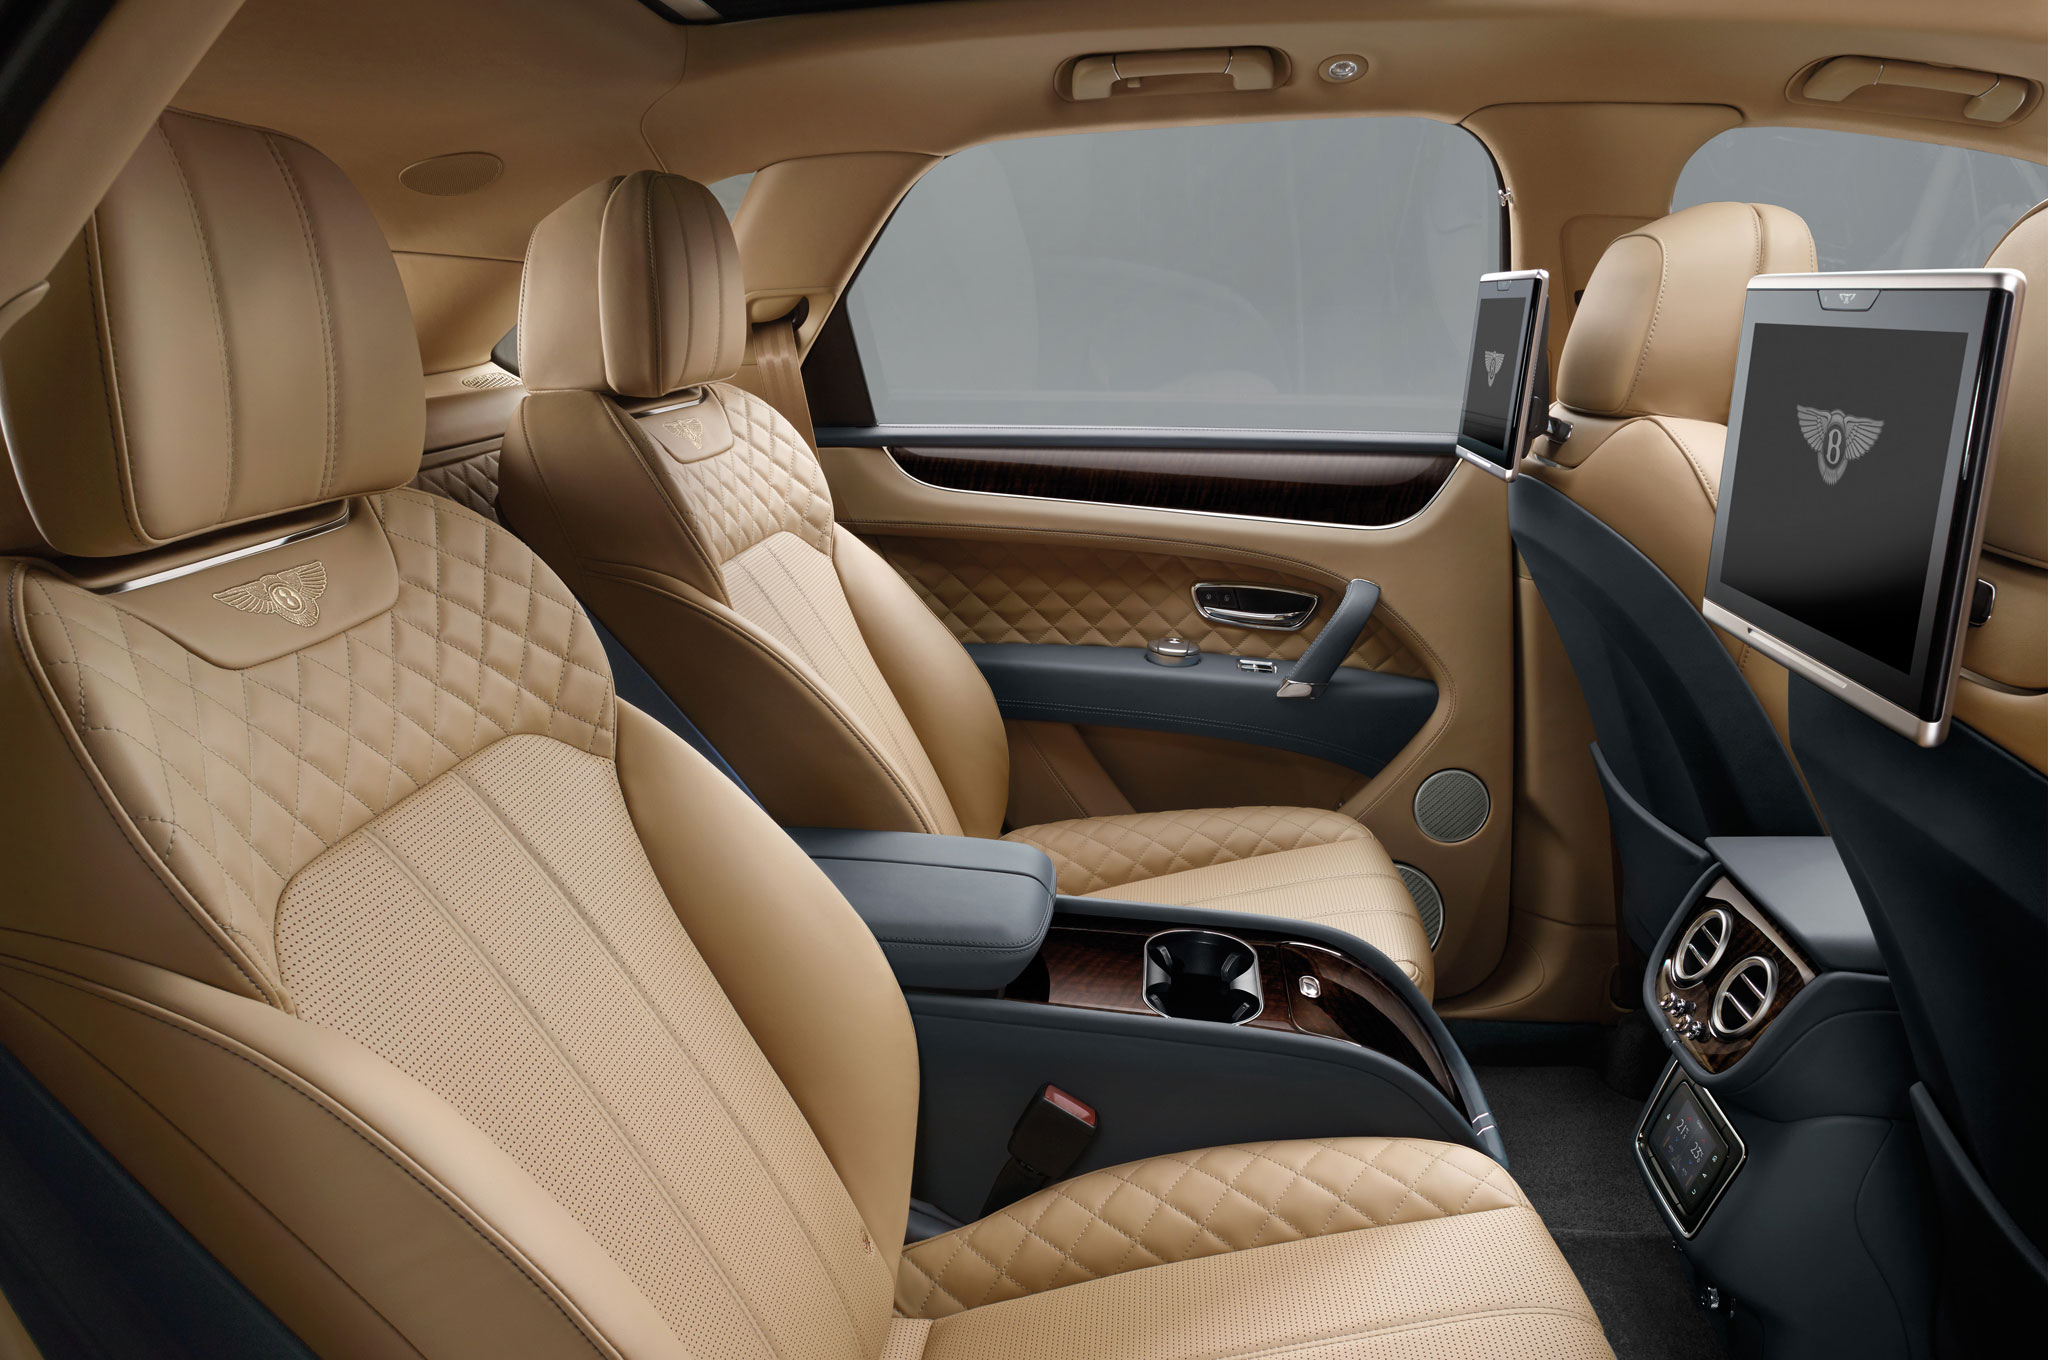 2017 Bentley Bentayga Rear Seats Interior